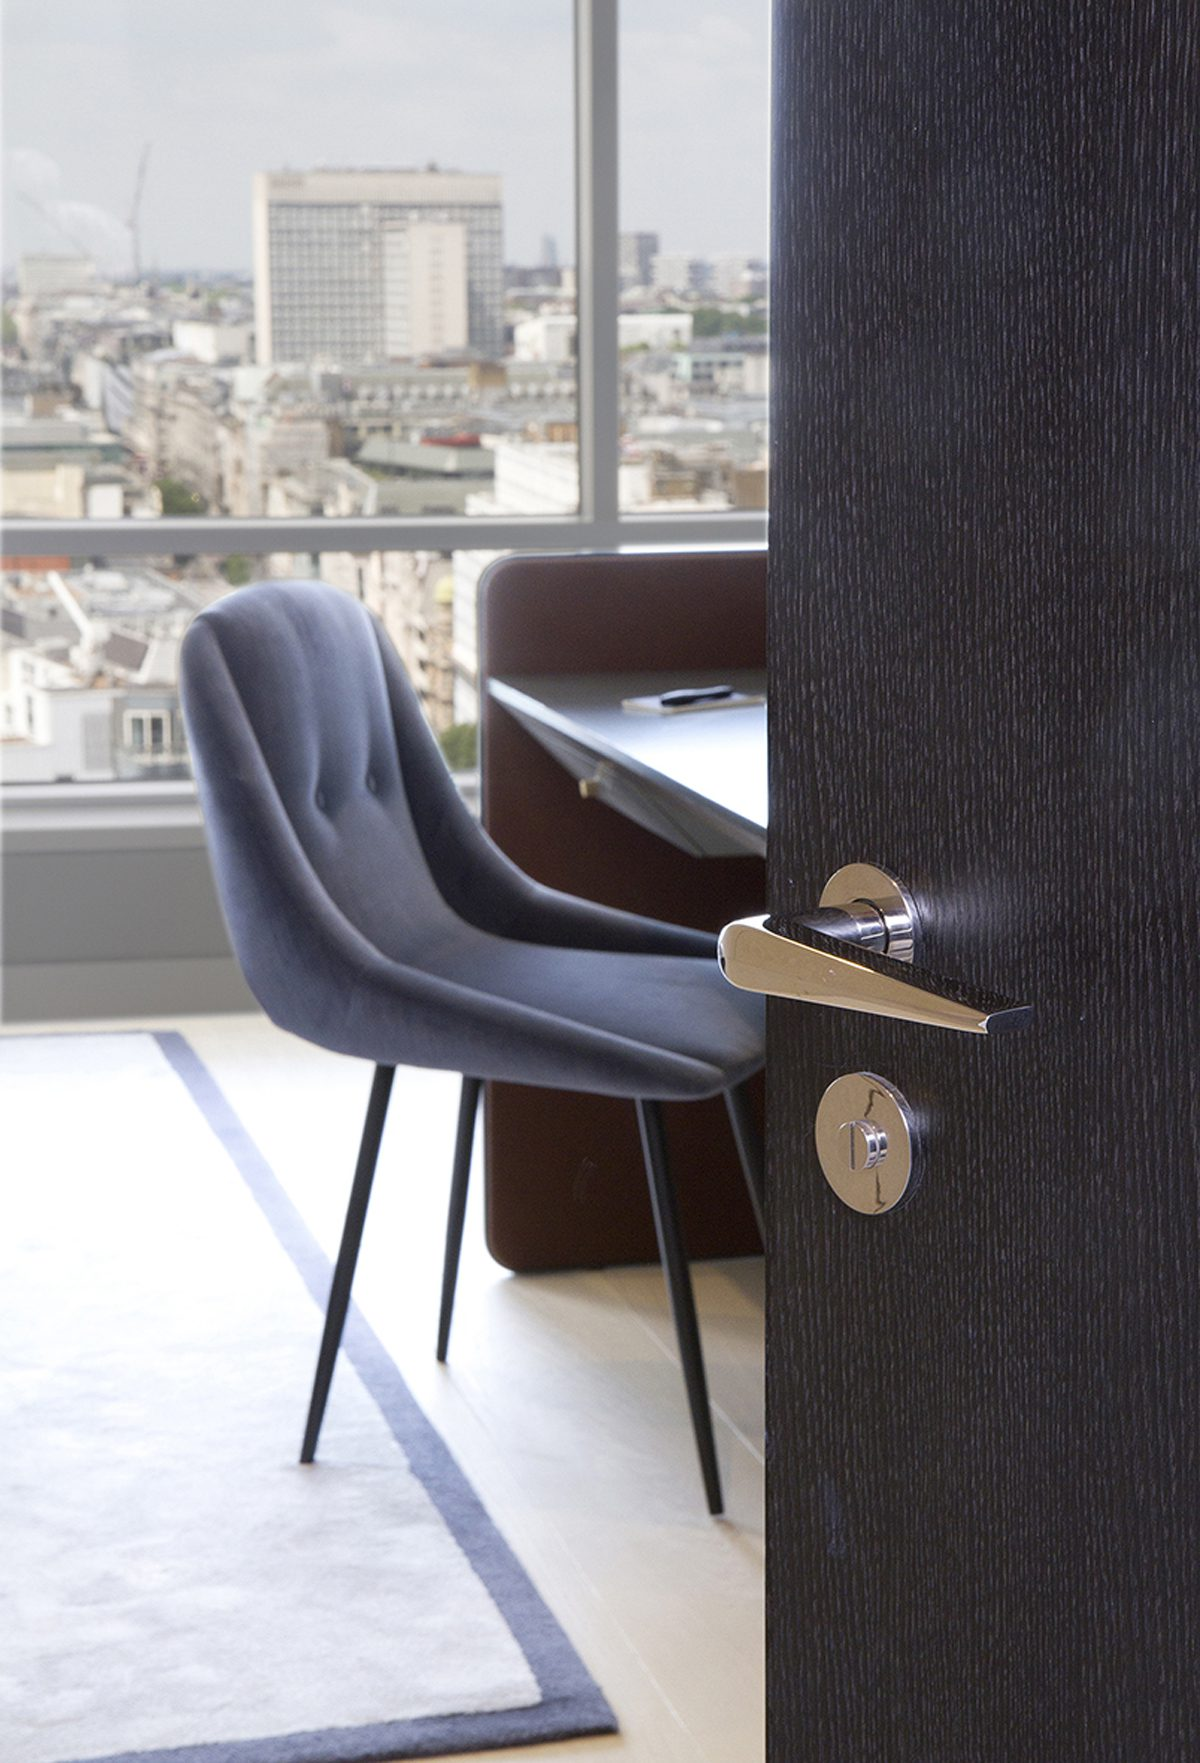 bespoke hardware lifts iconic tower architecture today. Black Bedroom Furniture Sets. Home Design Ideas